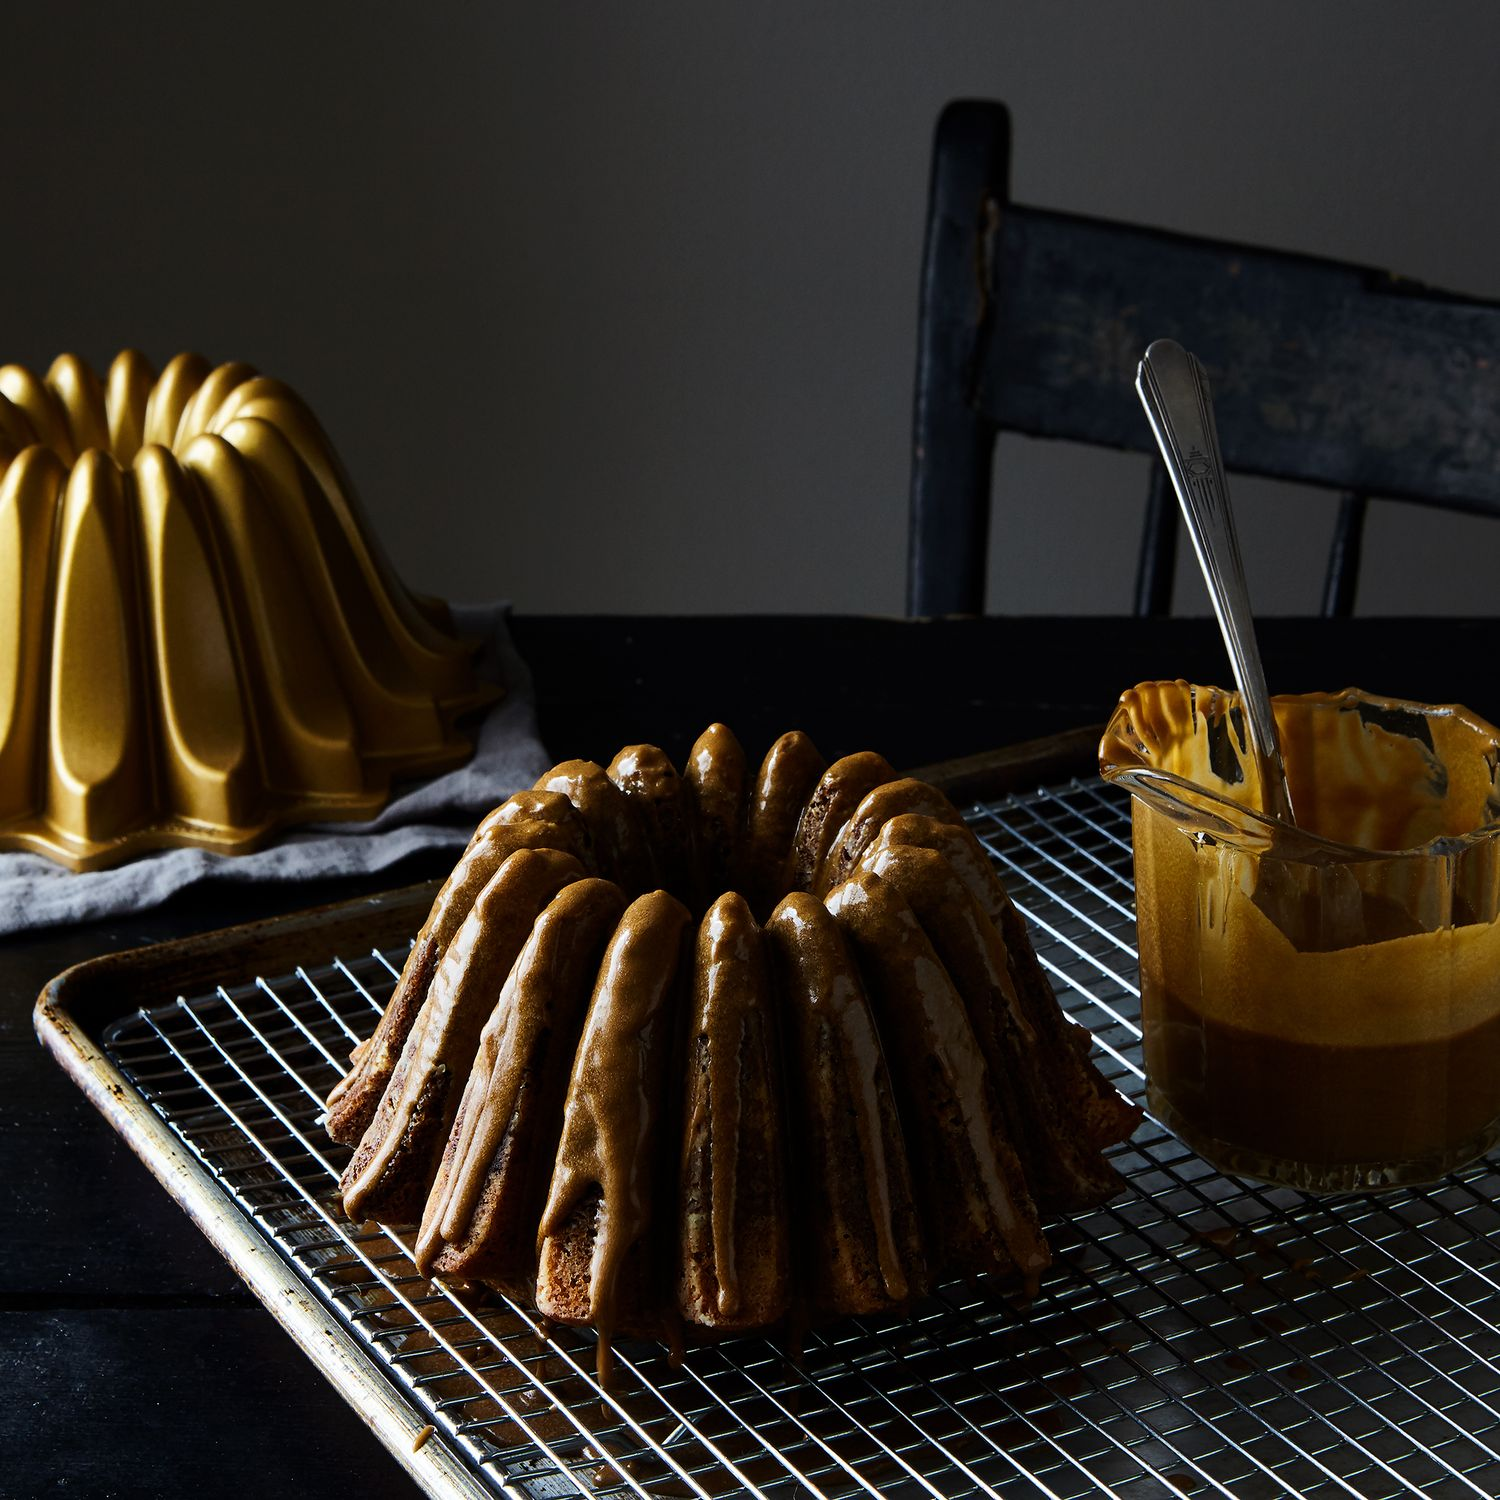 Nordic Ware Lotus Bundt Pan on Food52